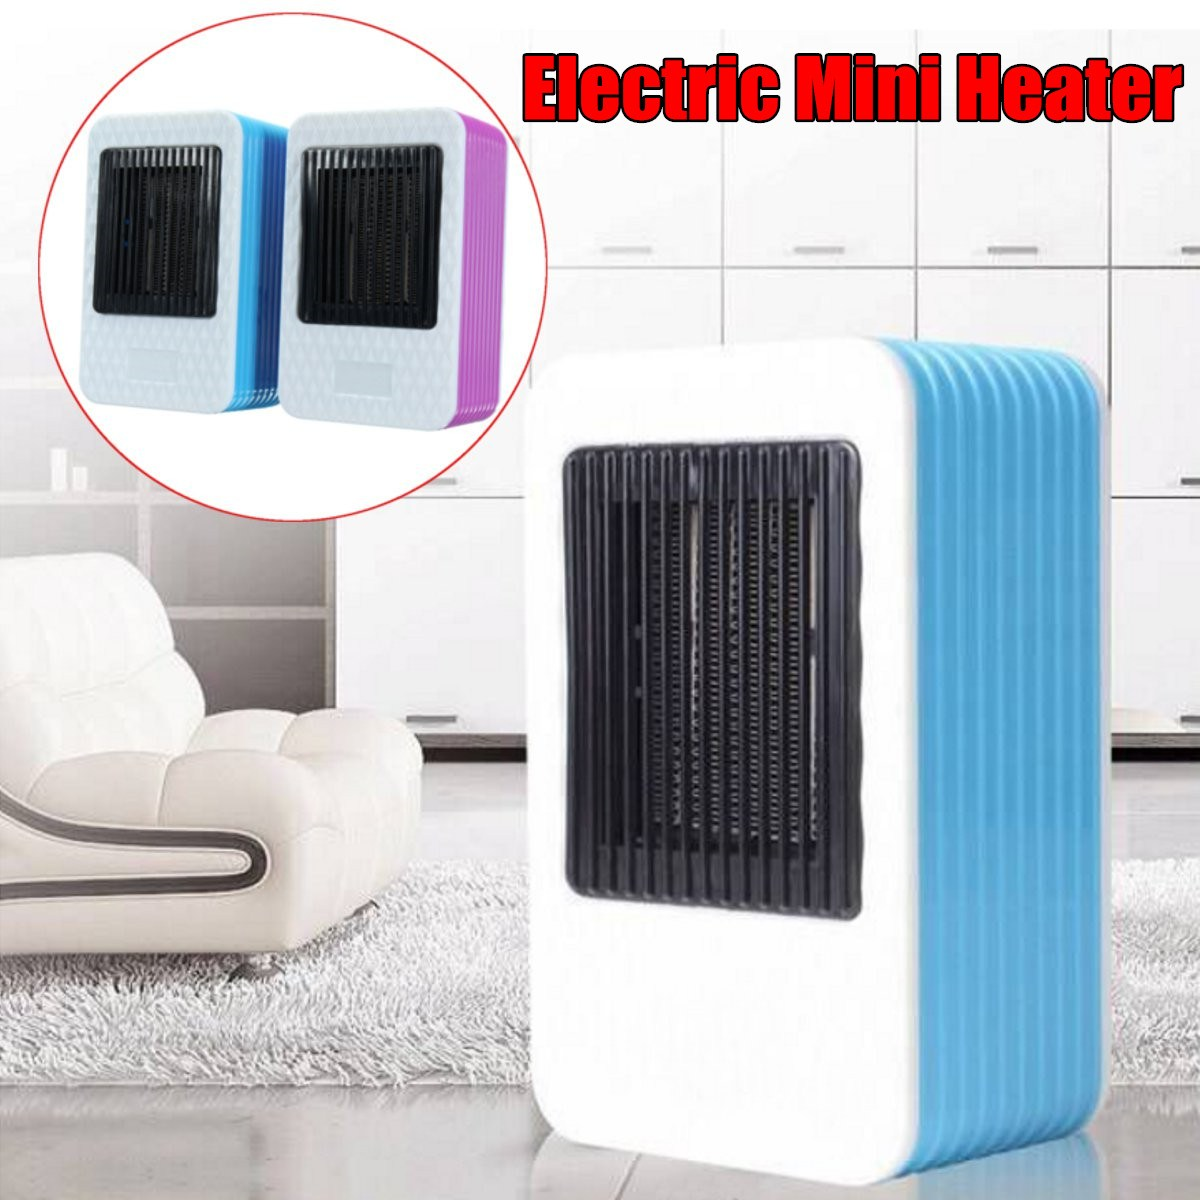 220V AC 500W Powerful Warm Blower Portable Mini Fast Heater Electric Air Heater Fan Stove Radiator Room Warmer warm air blower heating elements fan heater electric heat pipe warming air machine tubular element unit heater parts